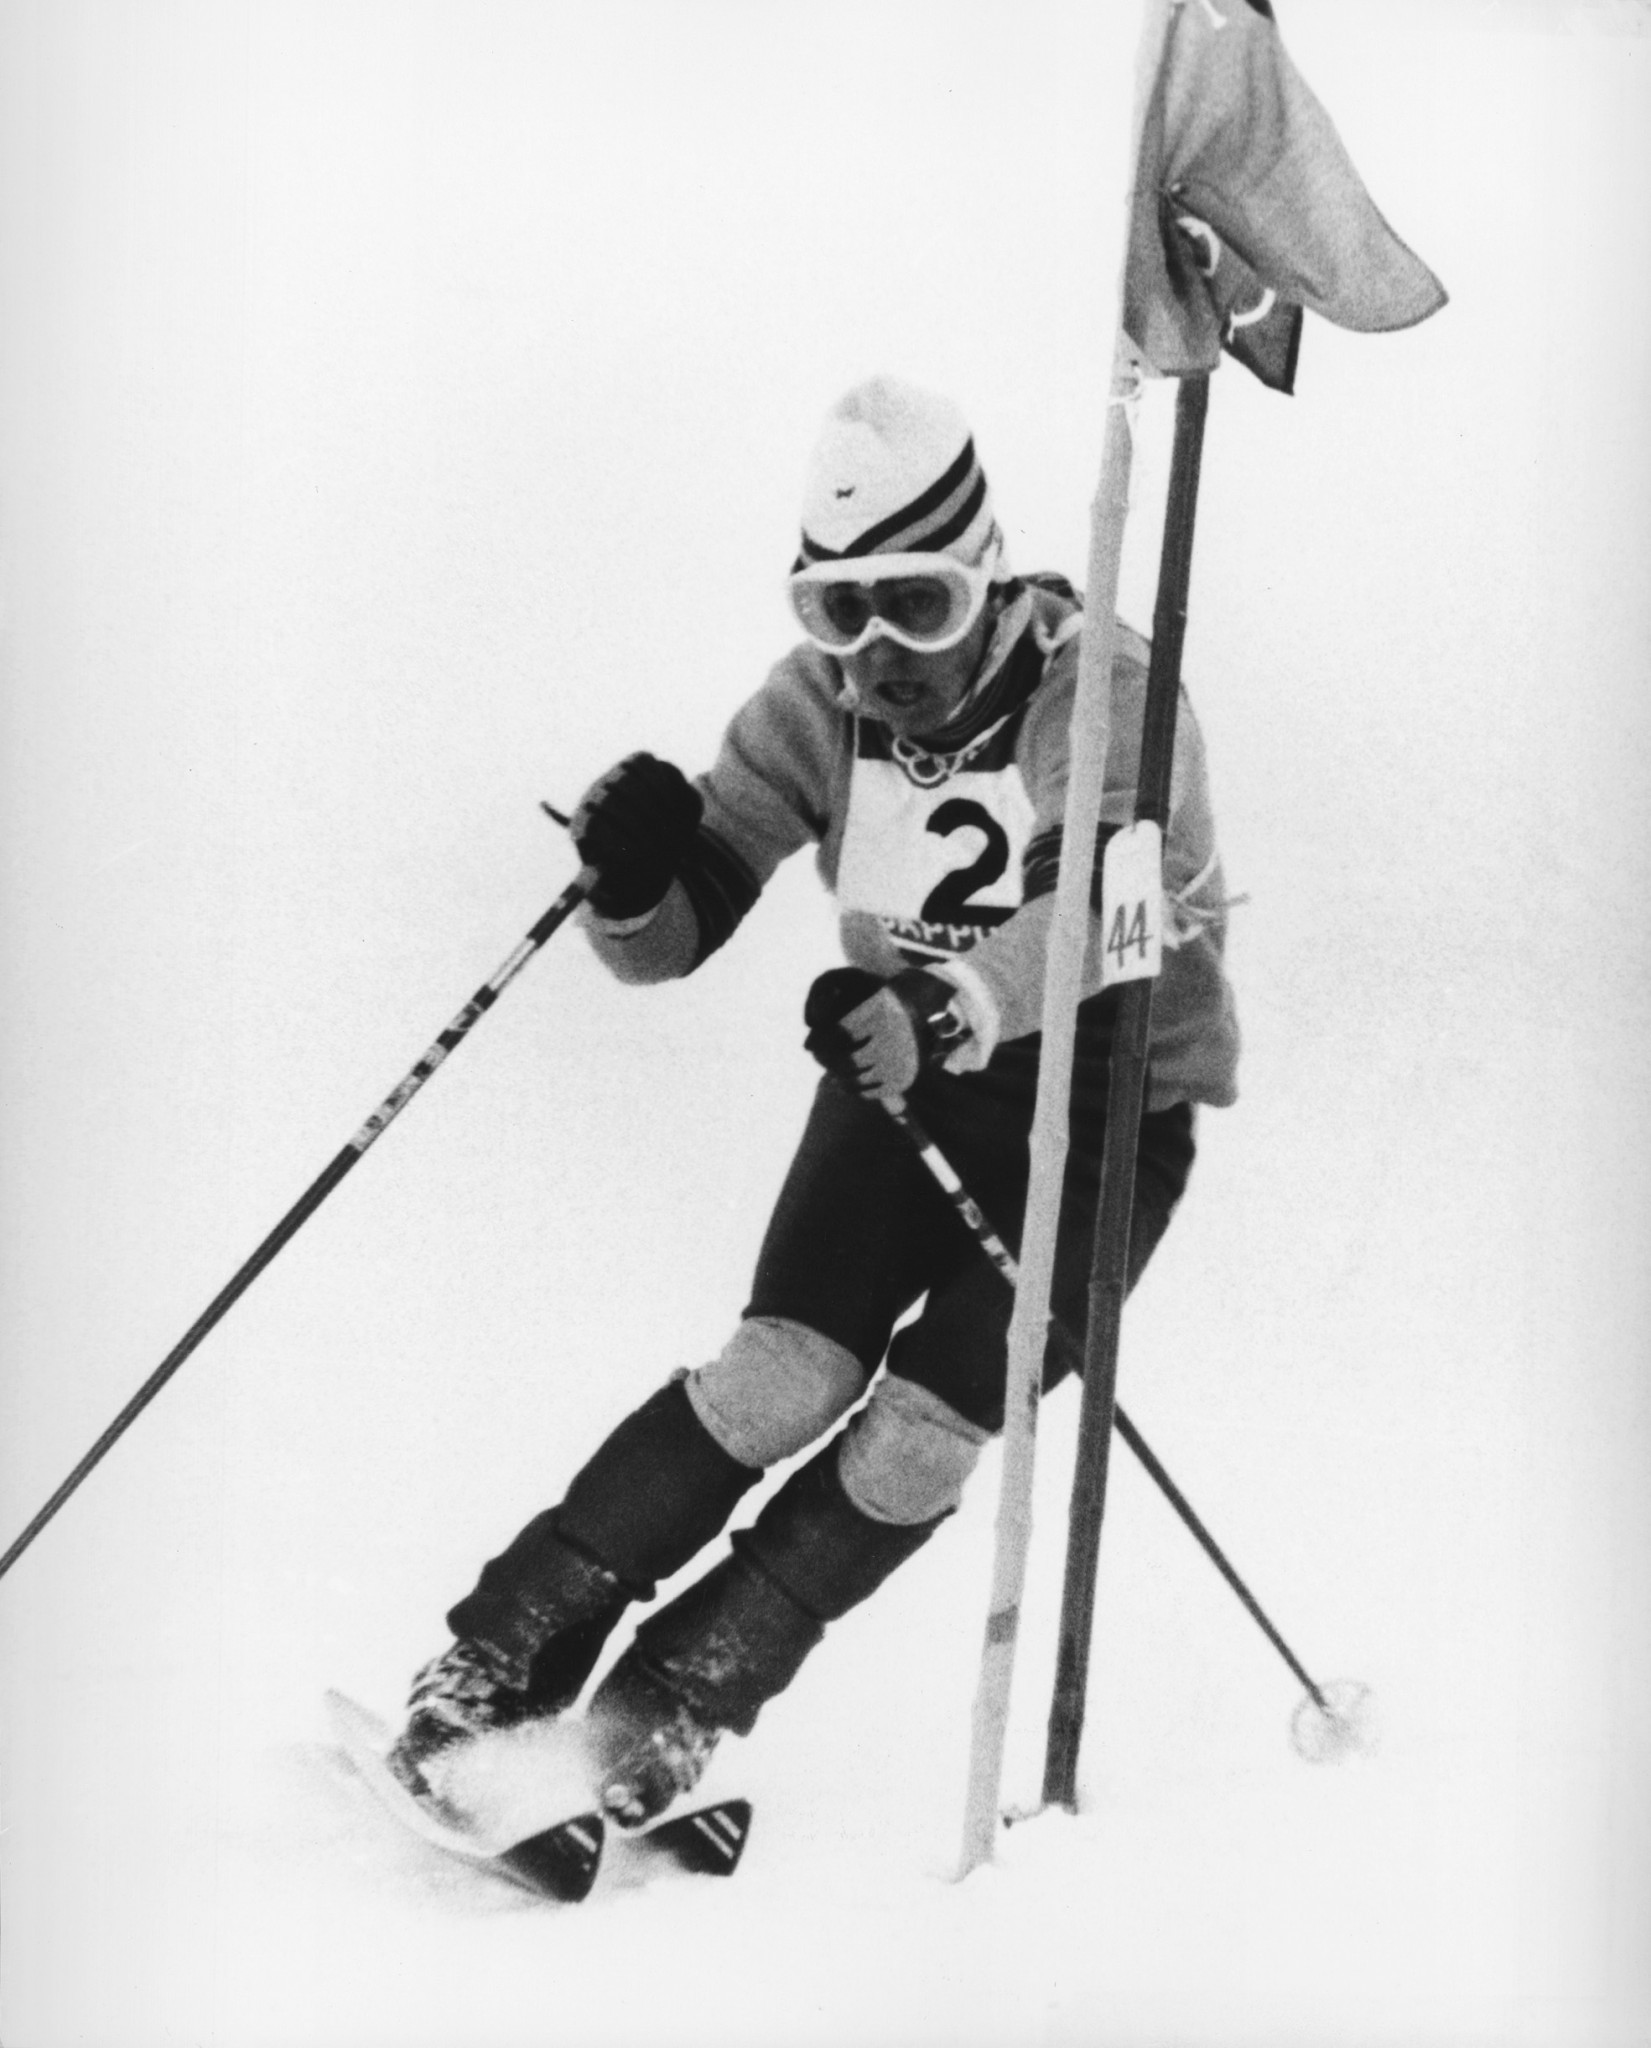 Spanish skier Francisco Fernández Ochoa skiing to slalom victory at Sapporo 1972. It remains Spain's only Winter Olympic gold medal ©Getty Images